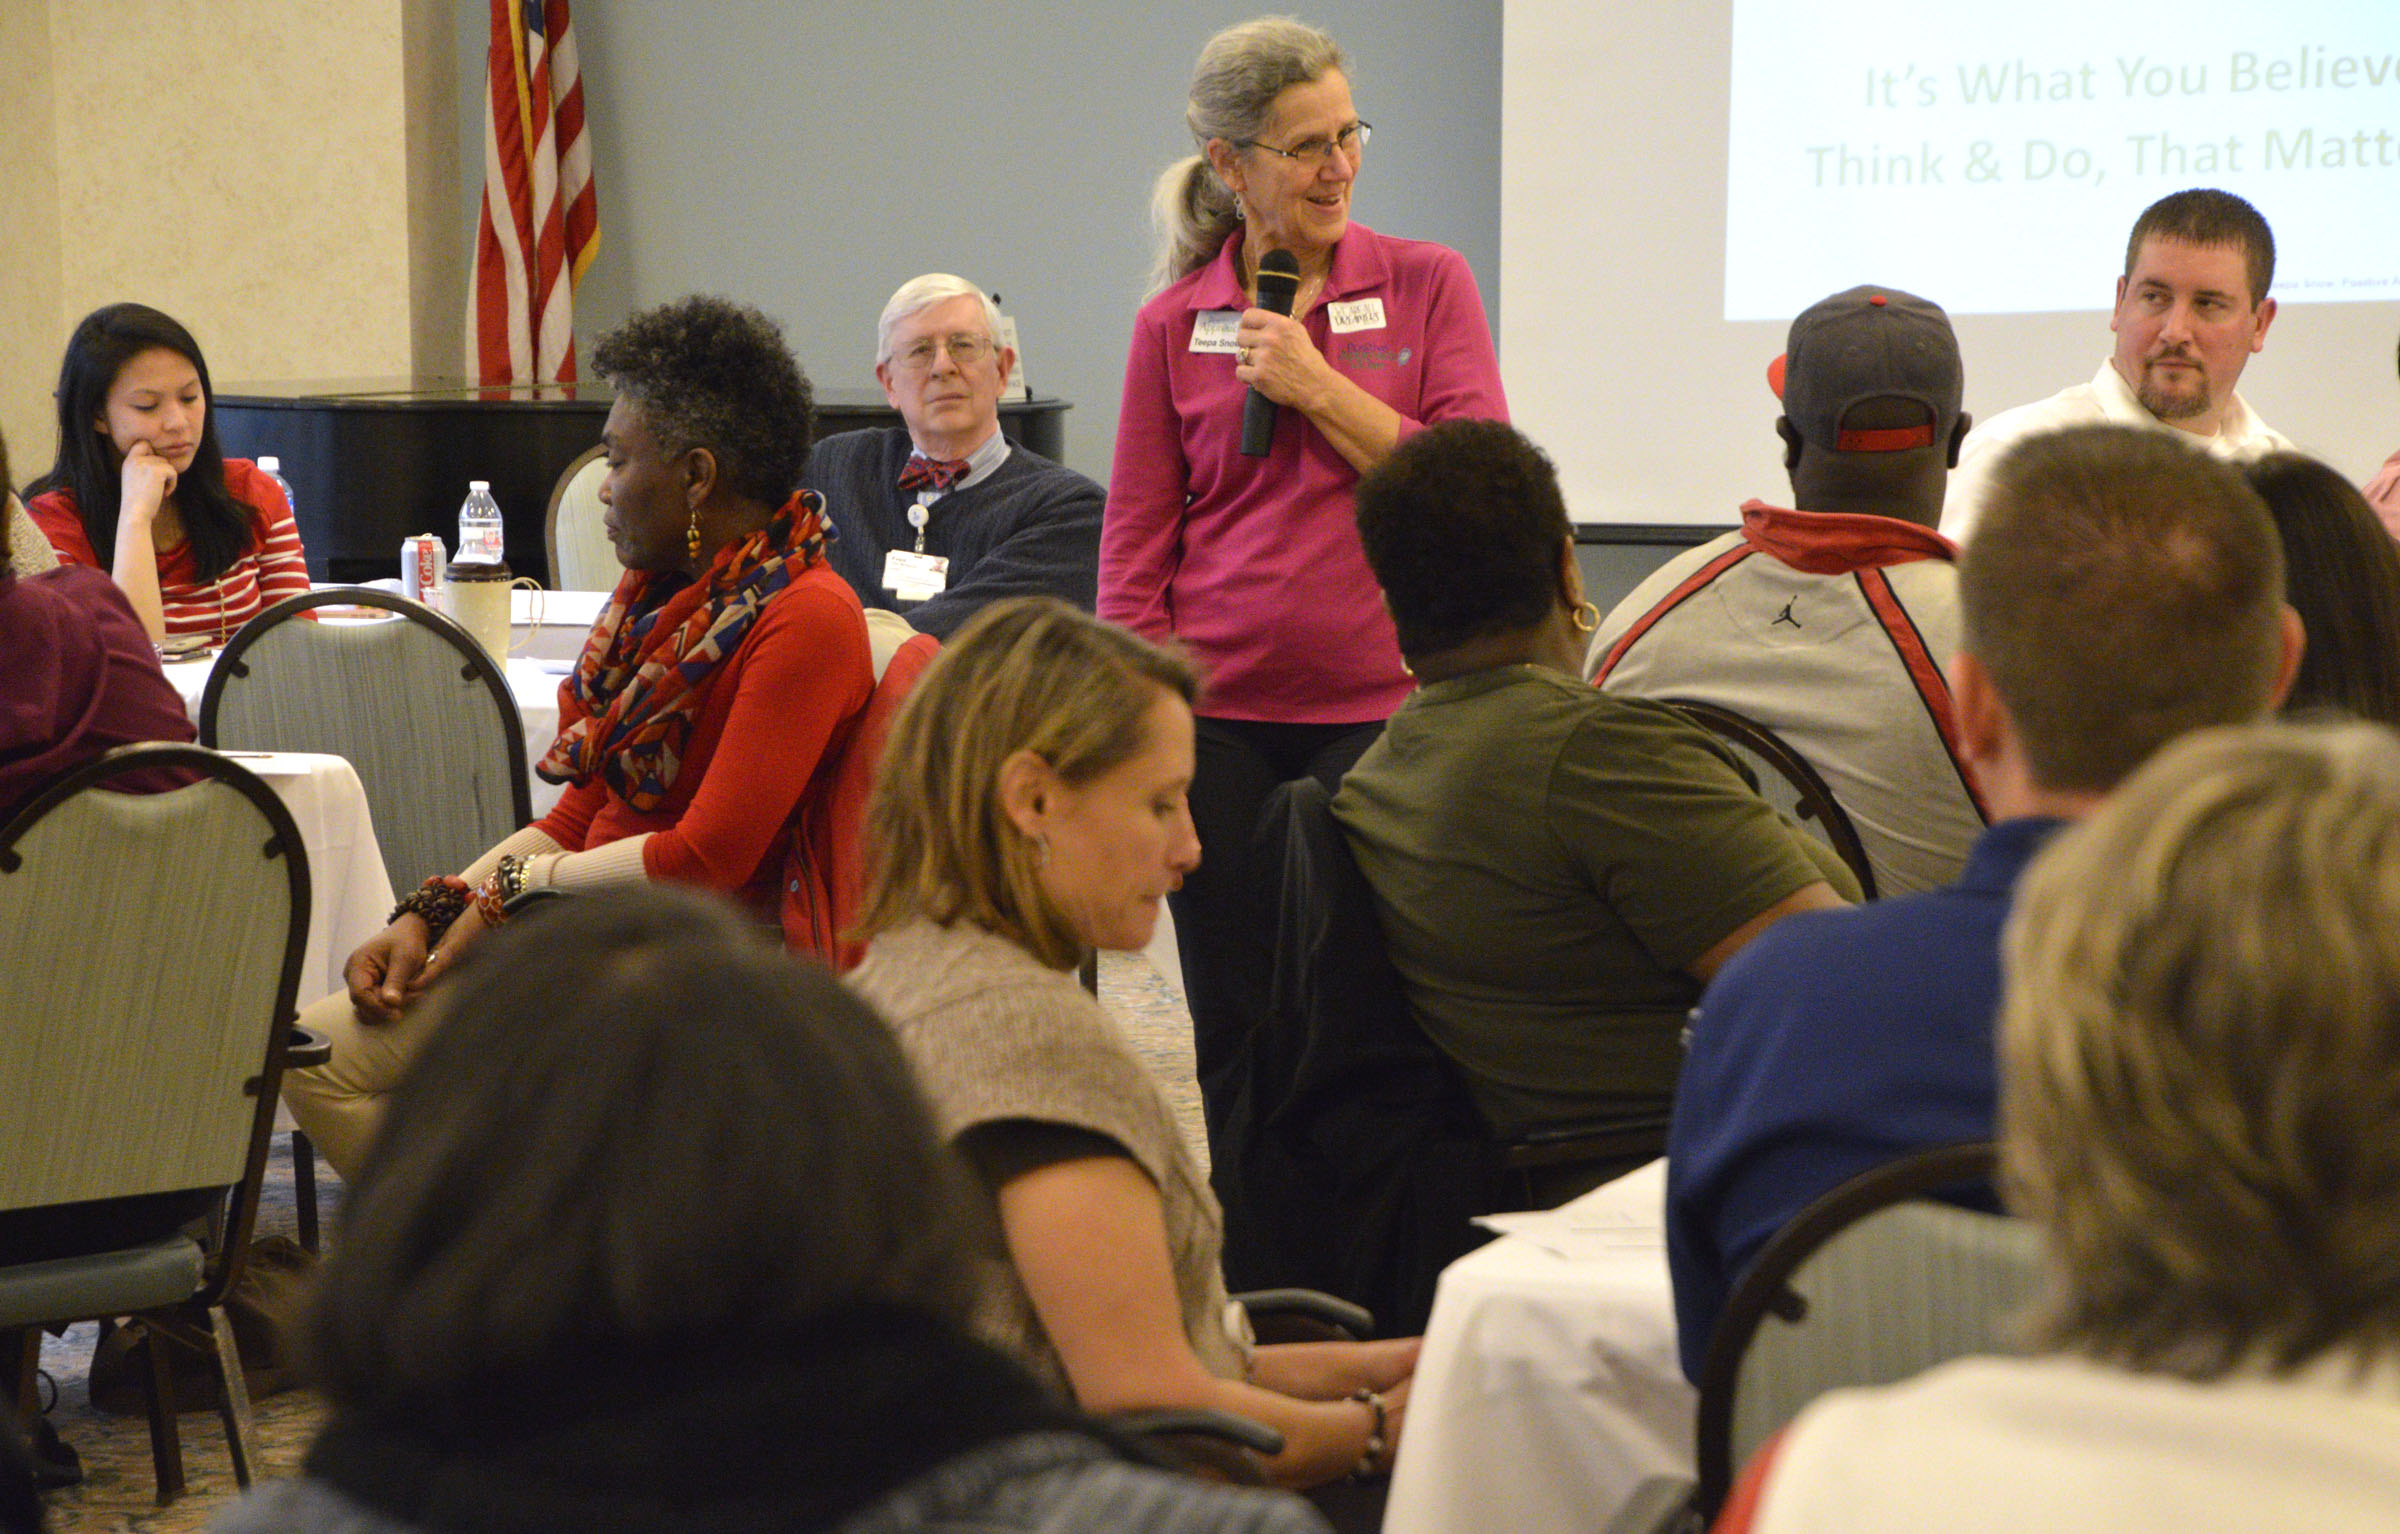 Marjorie P. Lee Staff Learn About a Positive Approach to Care®